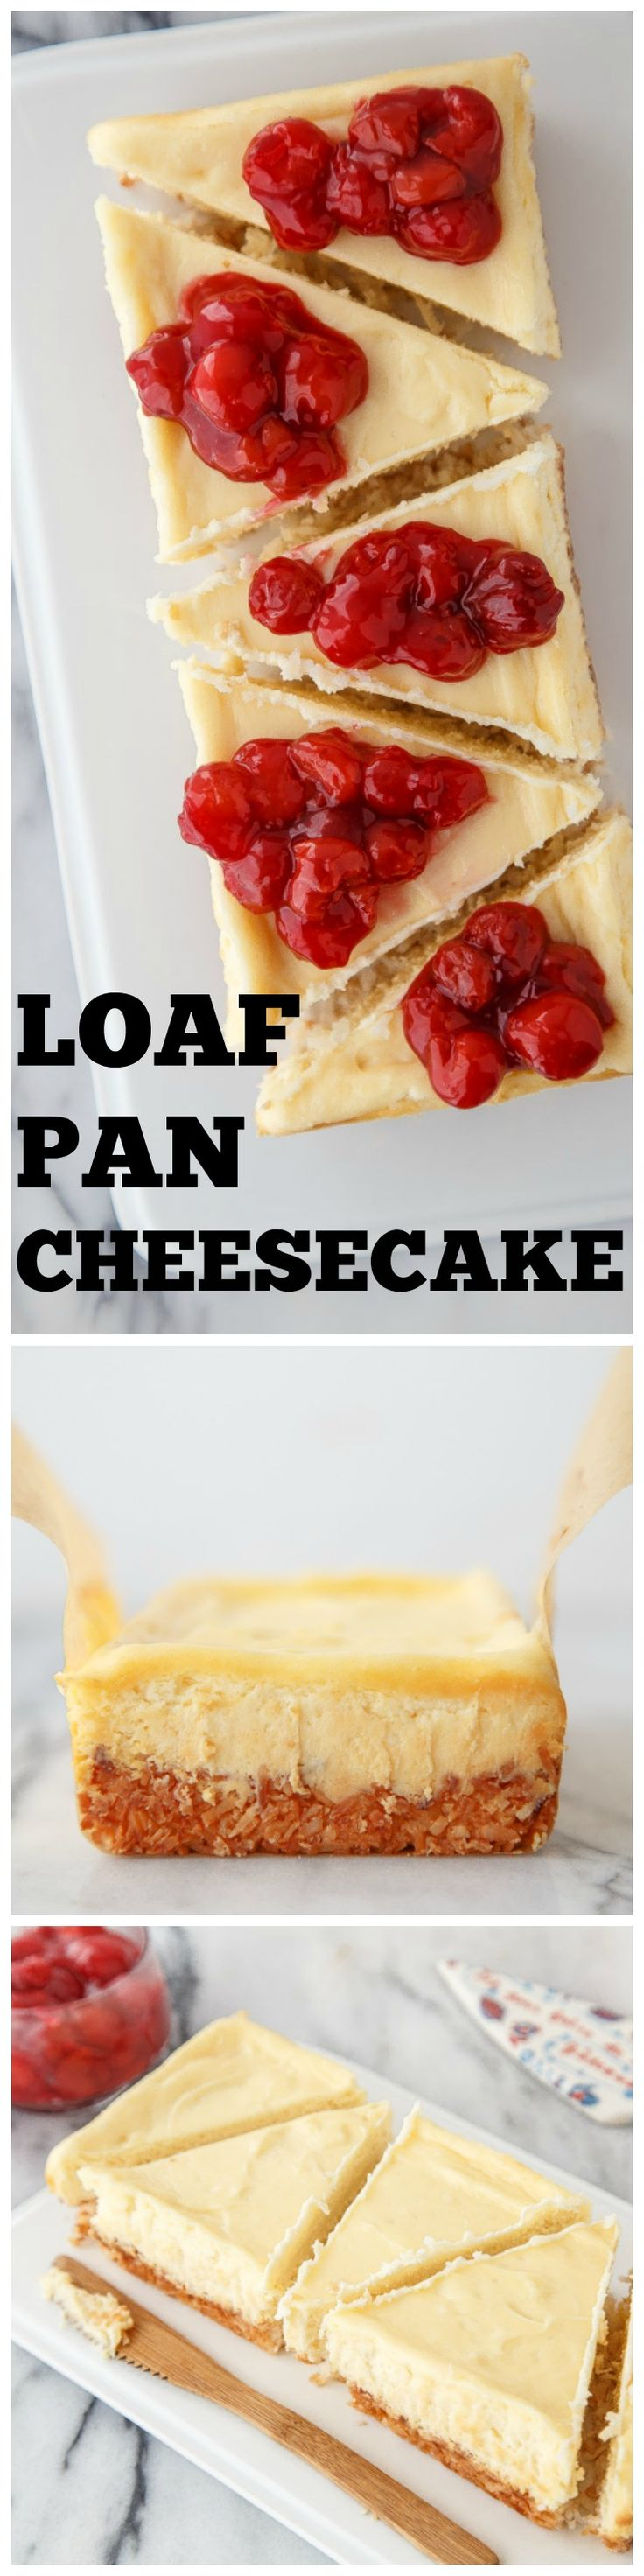 "A small cheesecake with less servings than a big 9"" cheesecake. All the same great flavor, just made in a small bread loaf pan. @dessertfortwo"